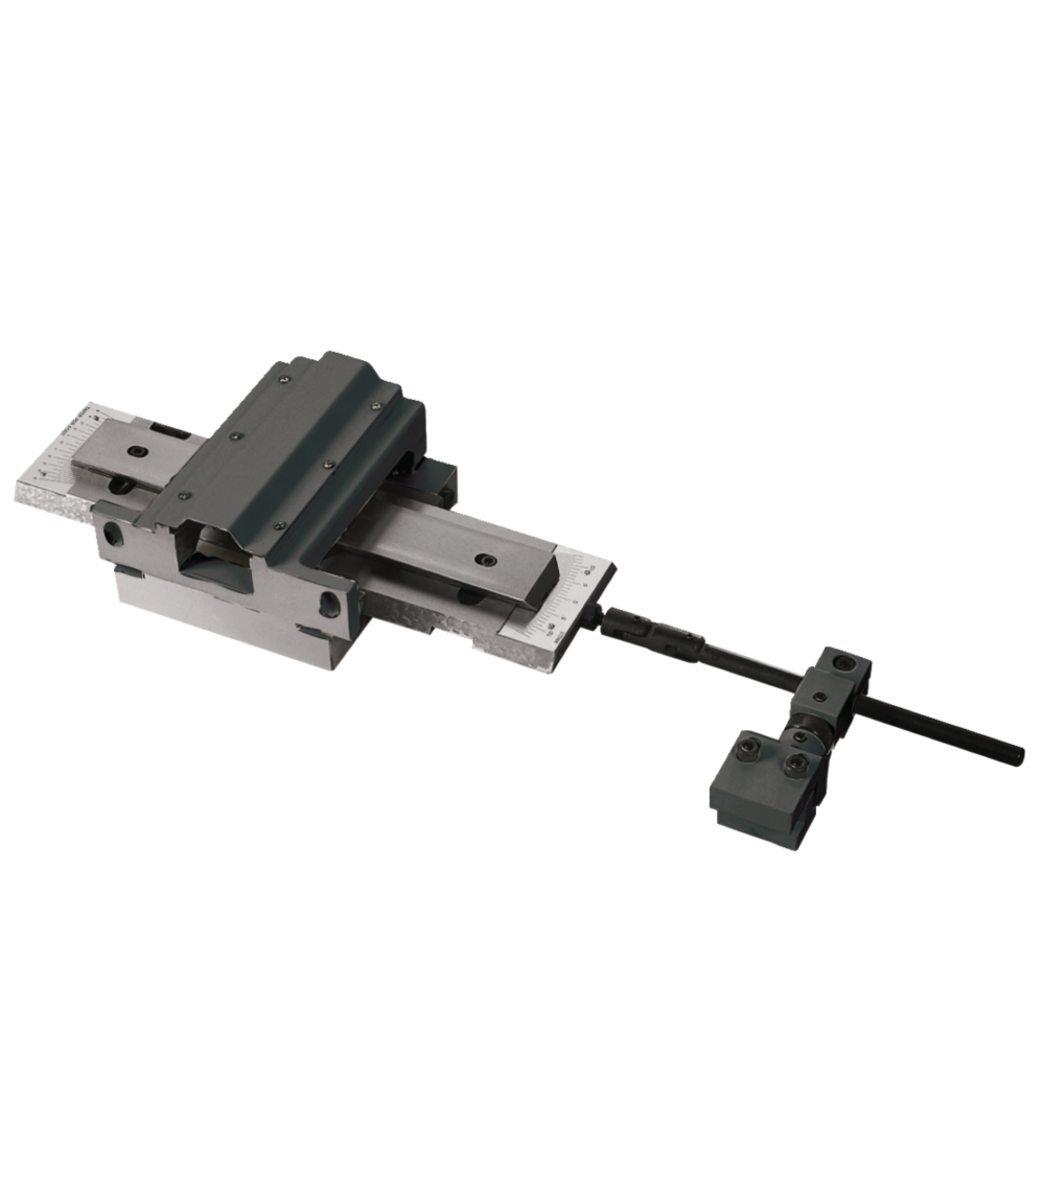 JET — Taper Attachment for GH-268ZH and 26120ZN Lathes